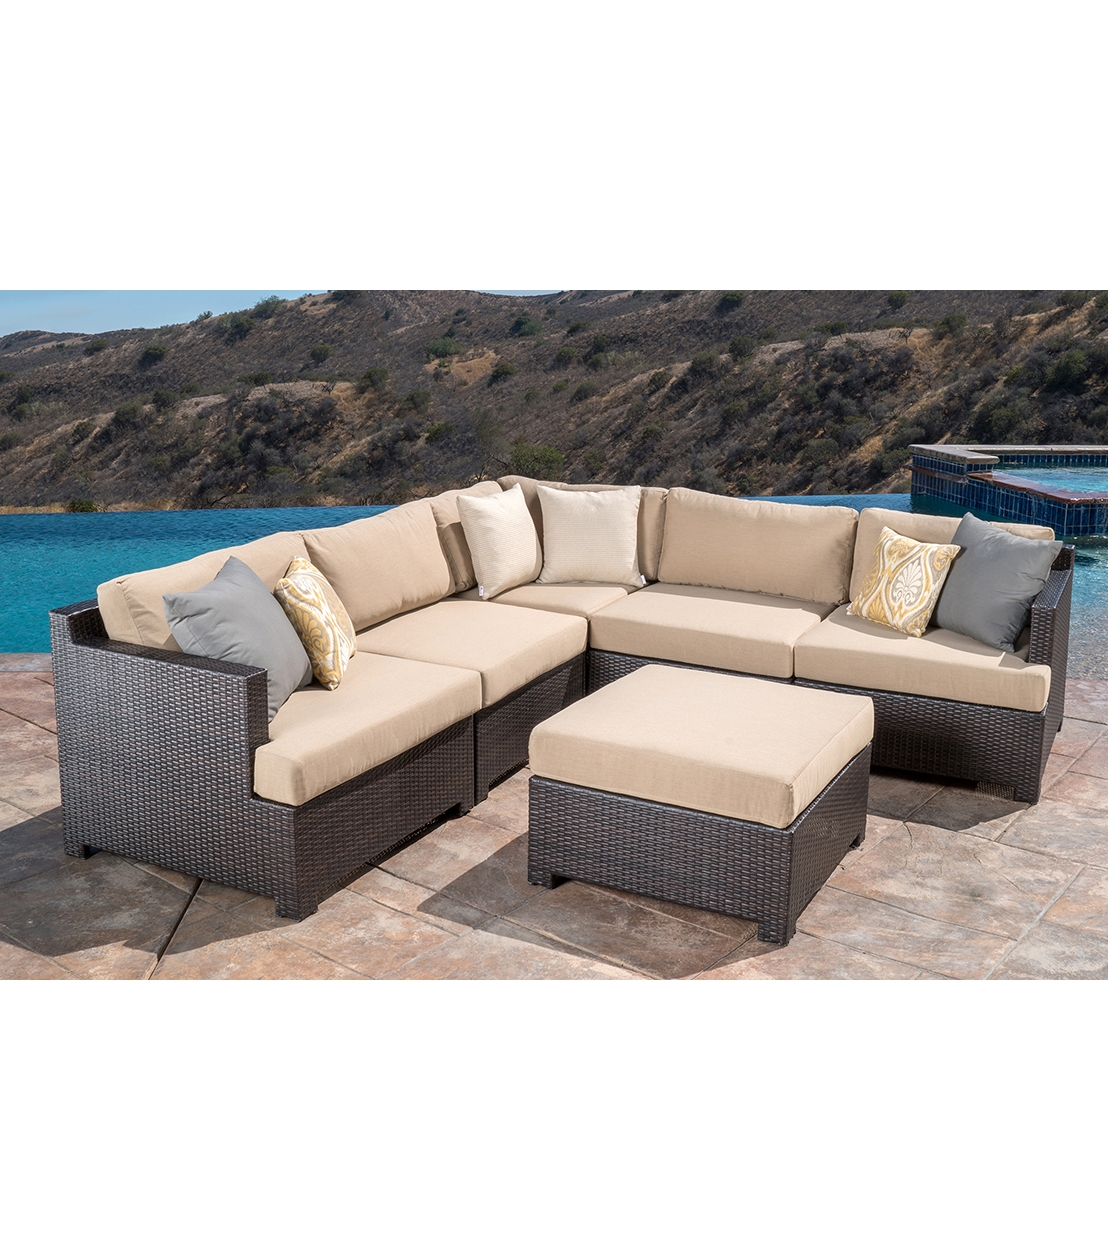 Patio Furniture Belmont 6 Piece Modular Sectional Set Within 6 Piece Modular Sectional Sofa (Image 9 of 15)